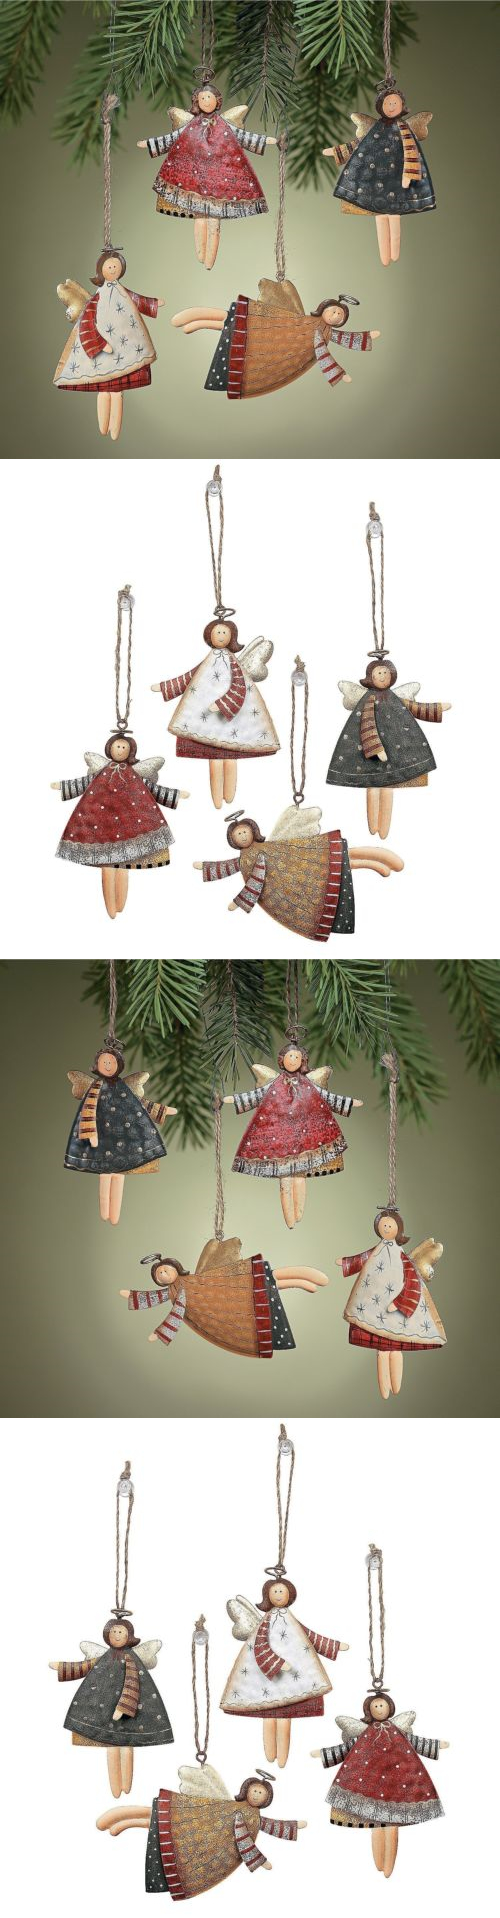 christmas decorations christmas tree ornaments dancing tin angels party holiday decor hanging ornament buy it